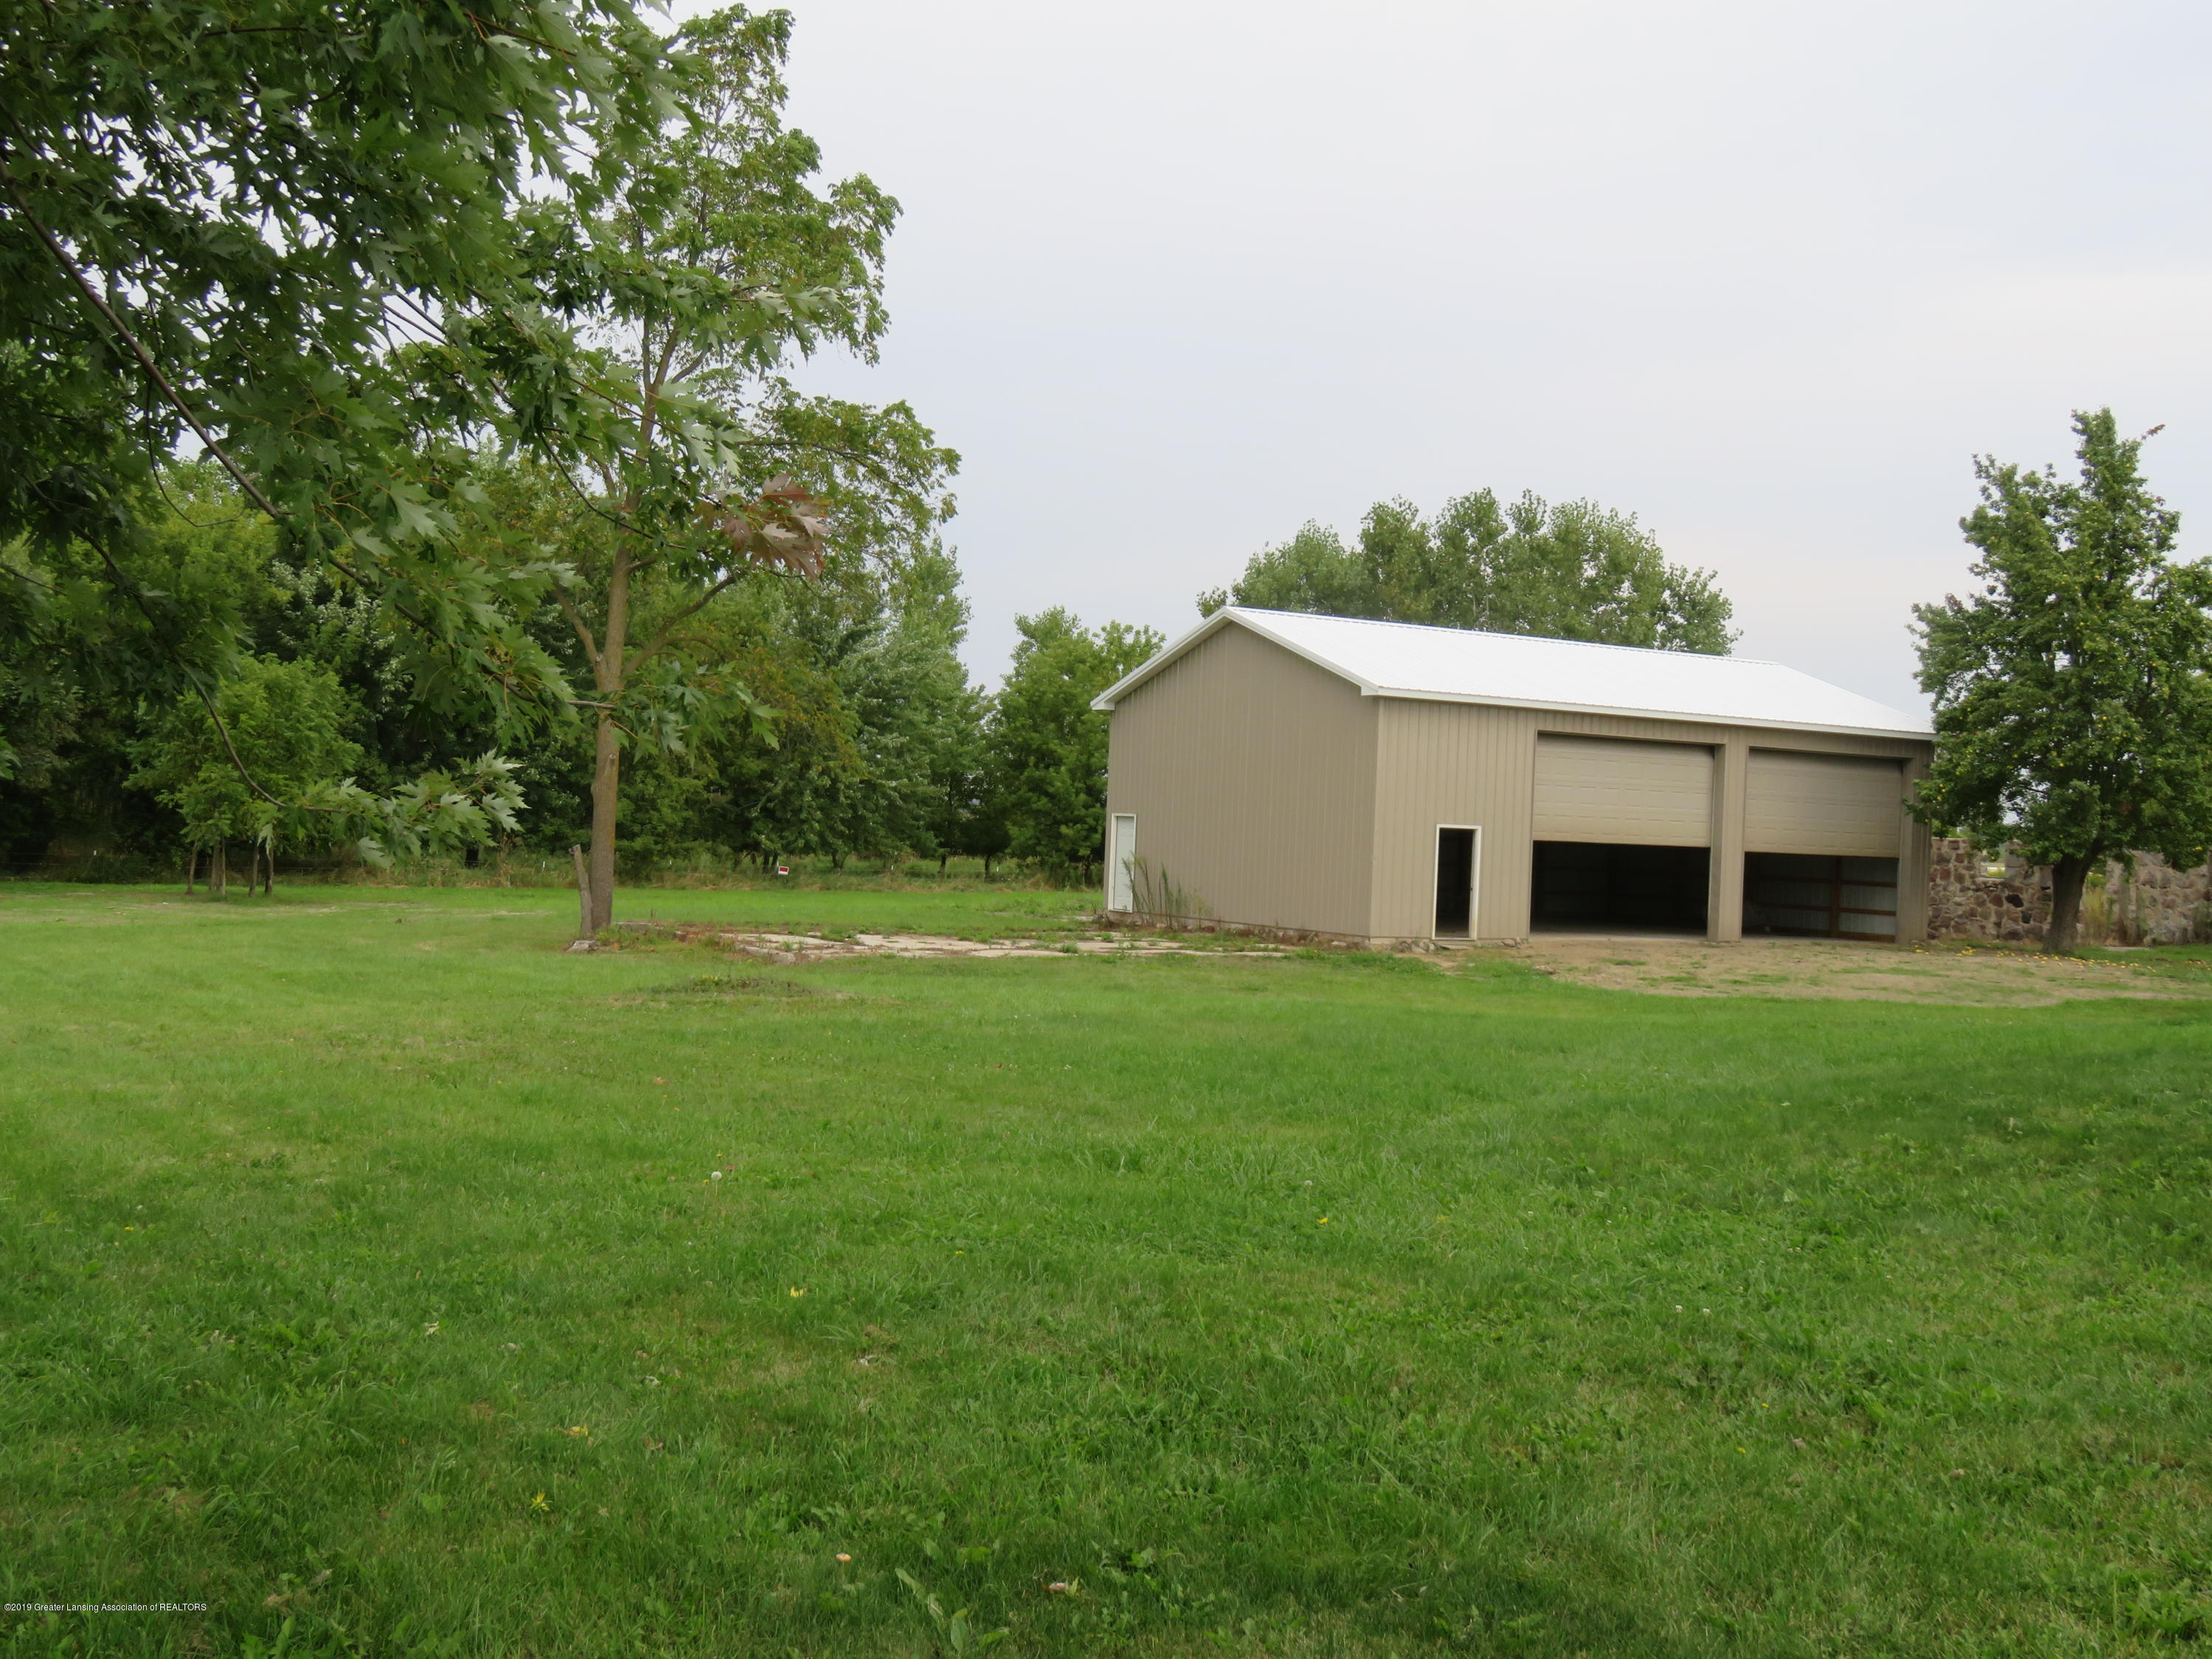 7123 E Mt Hope Hwy - Large 1536 Sq Foot Pole Barn - 31